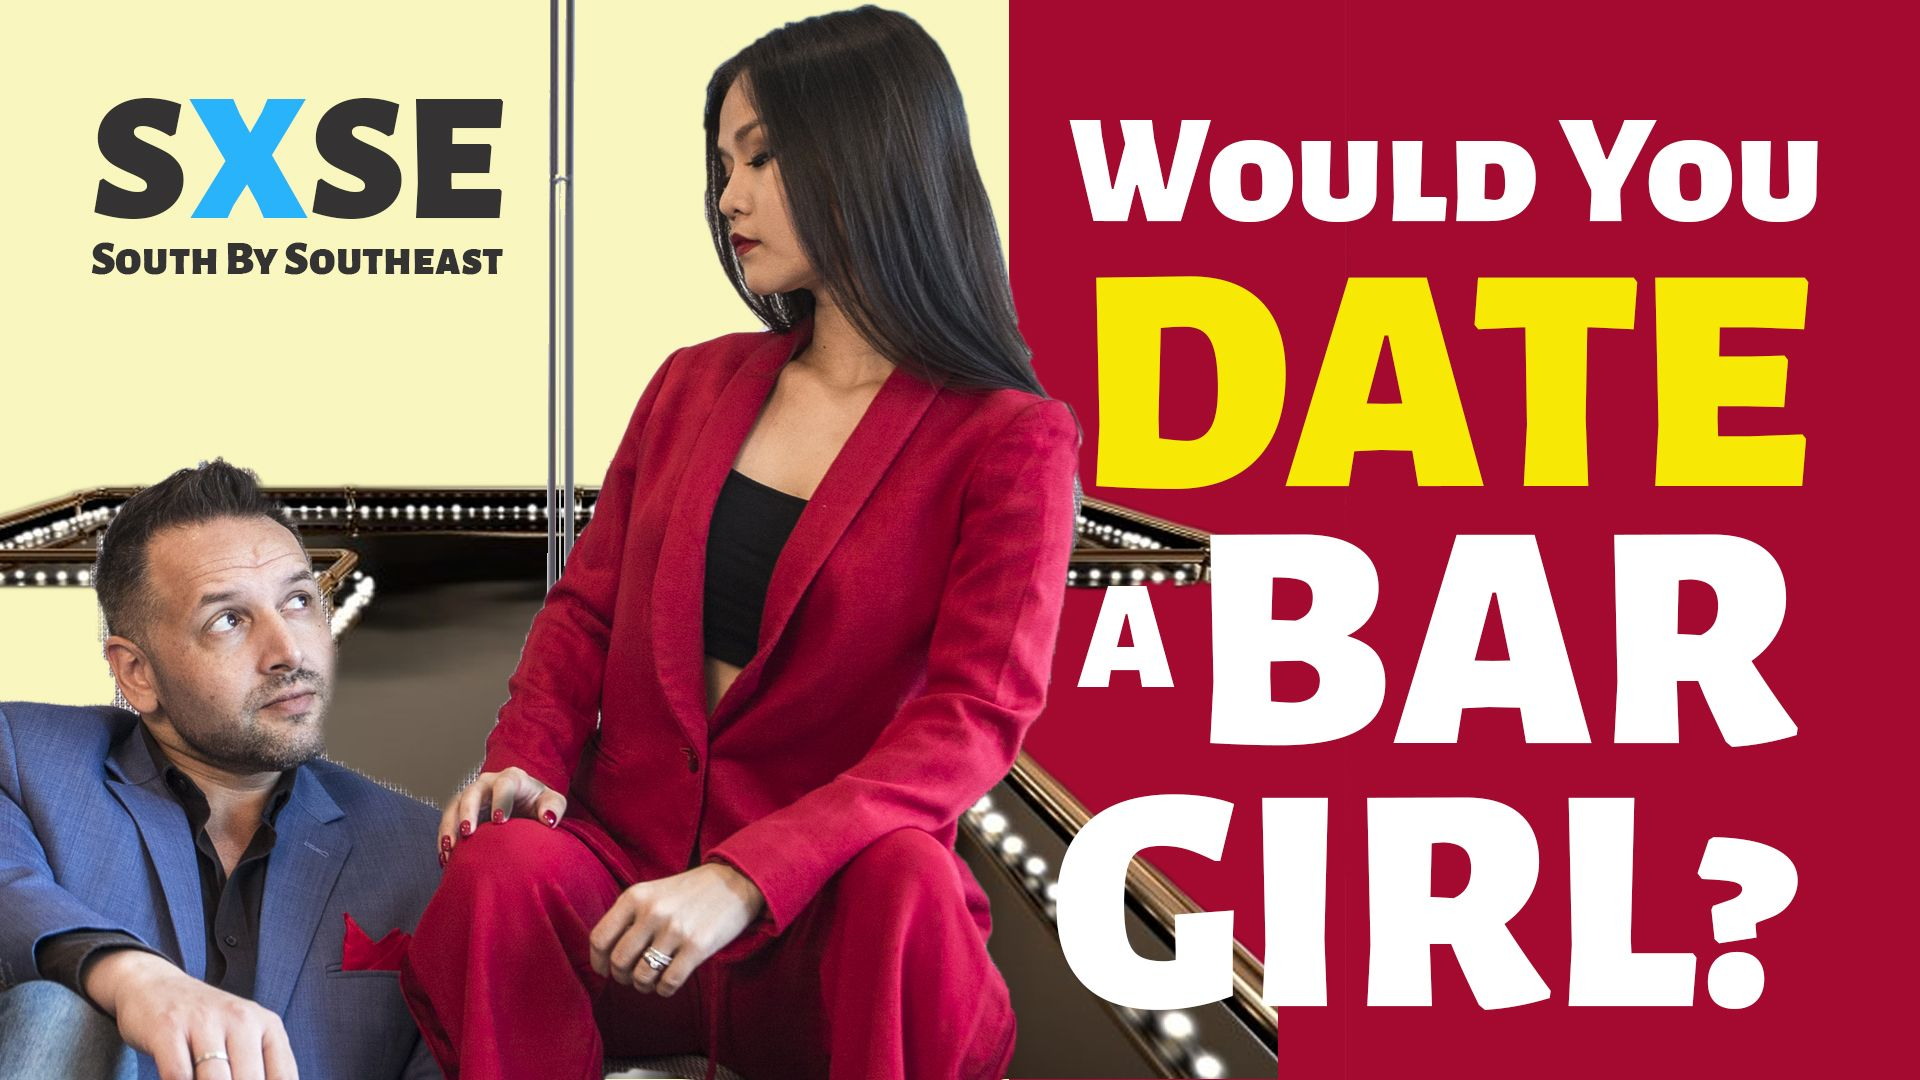 Would you Date a Bar-Girl? - Survey Debrief